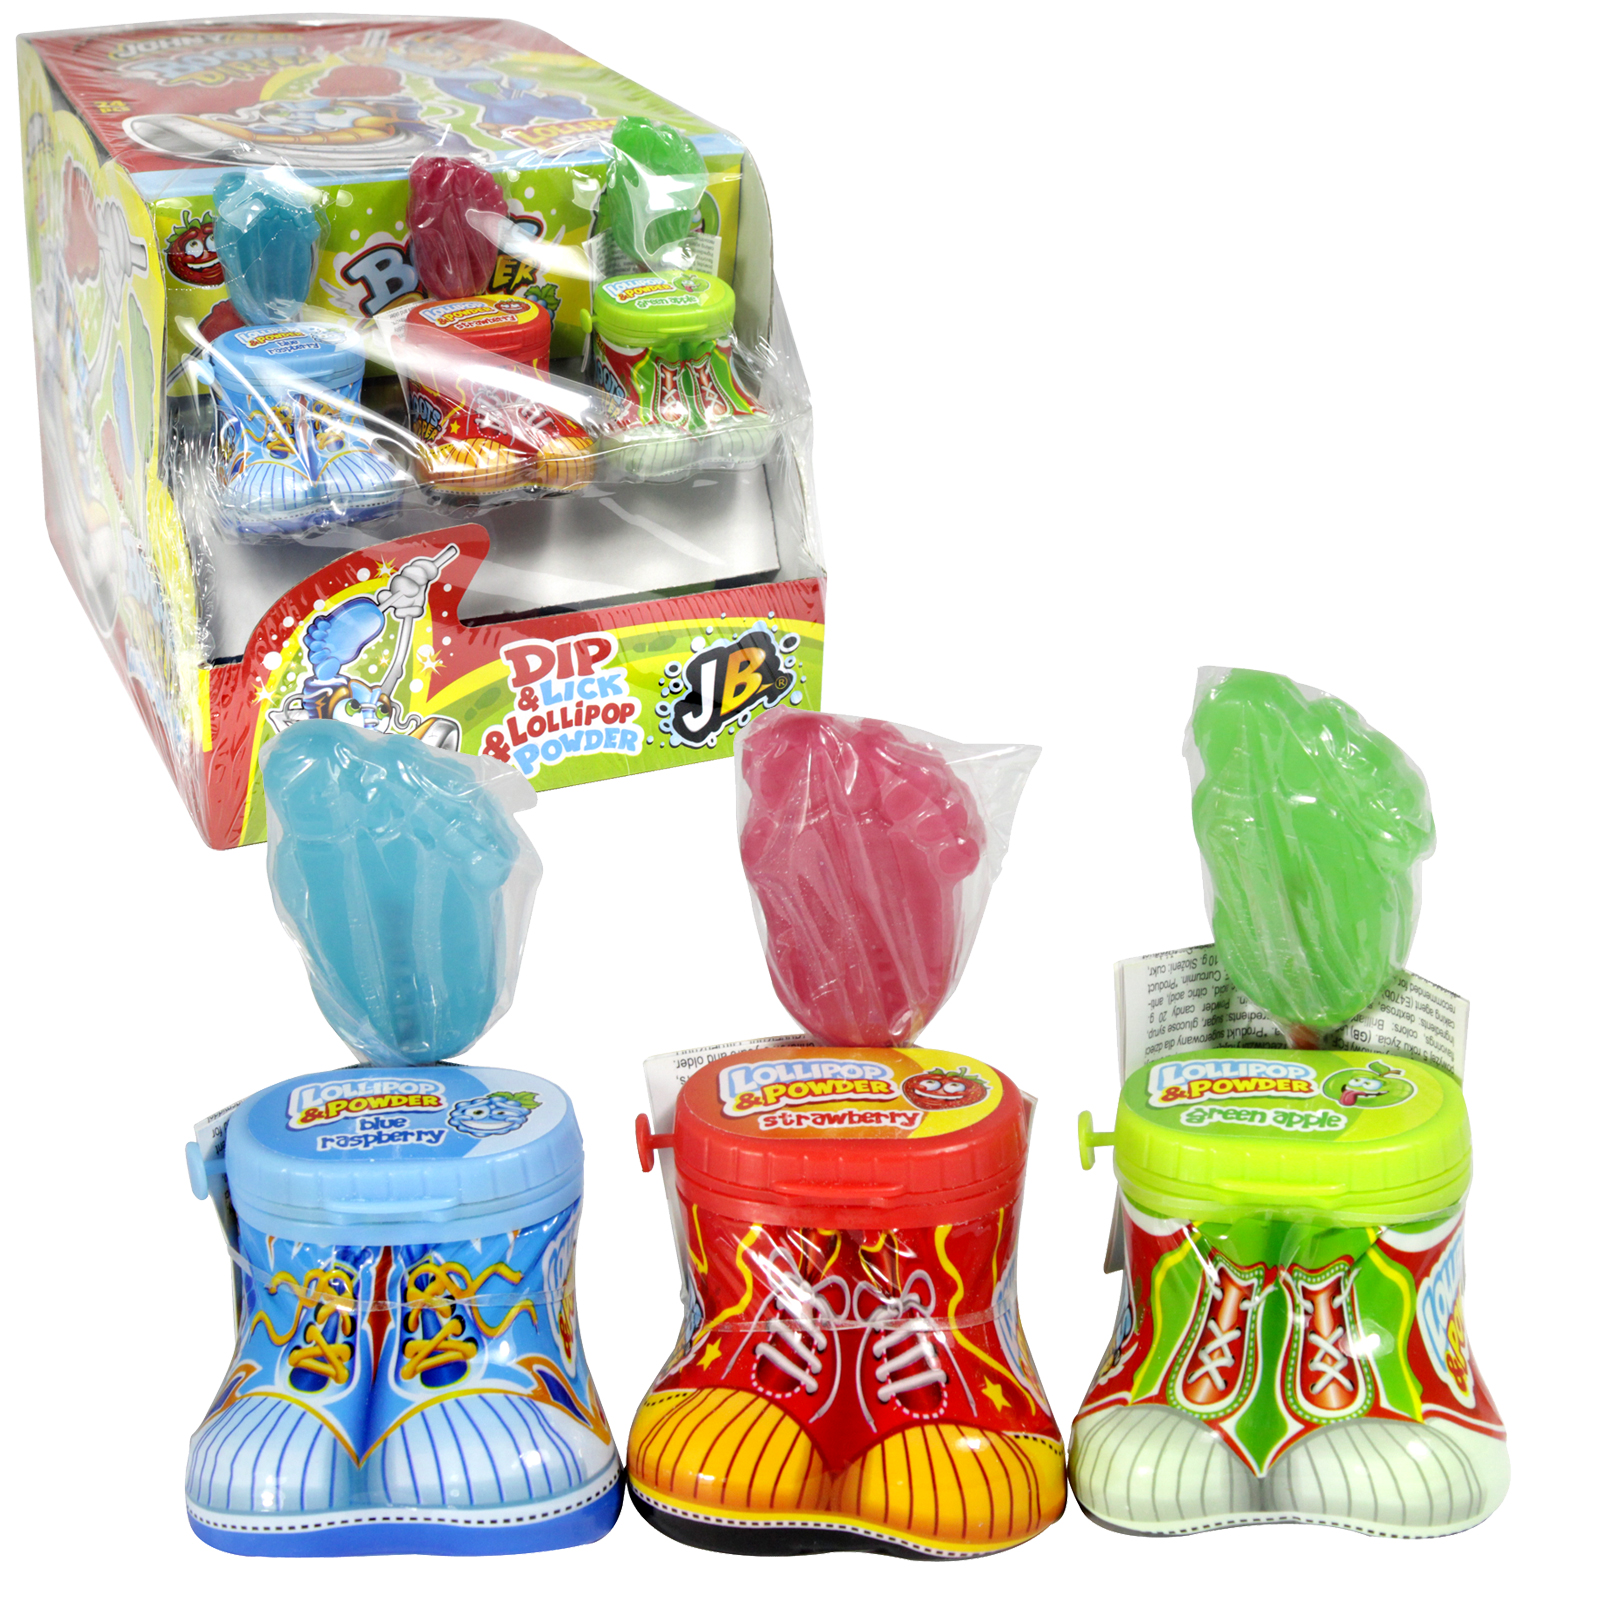 JOHNY BEE BOOTS DIPPER LOLLIPOP & POWDER DIP & LICK X24PCS